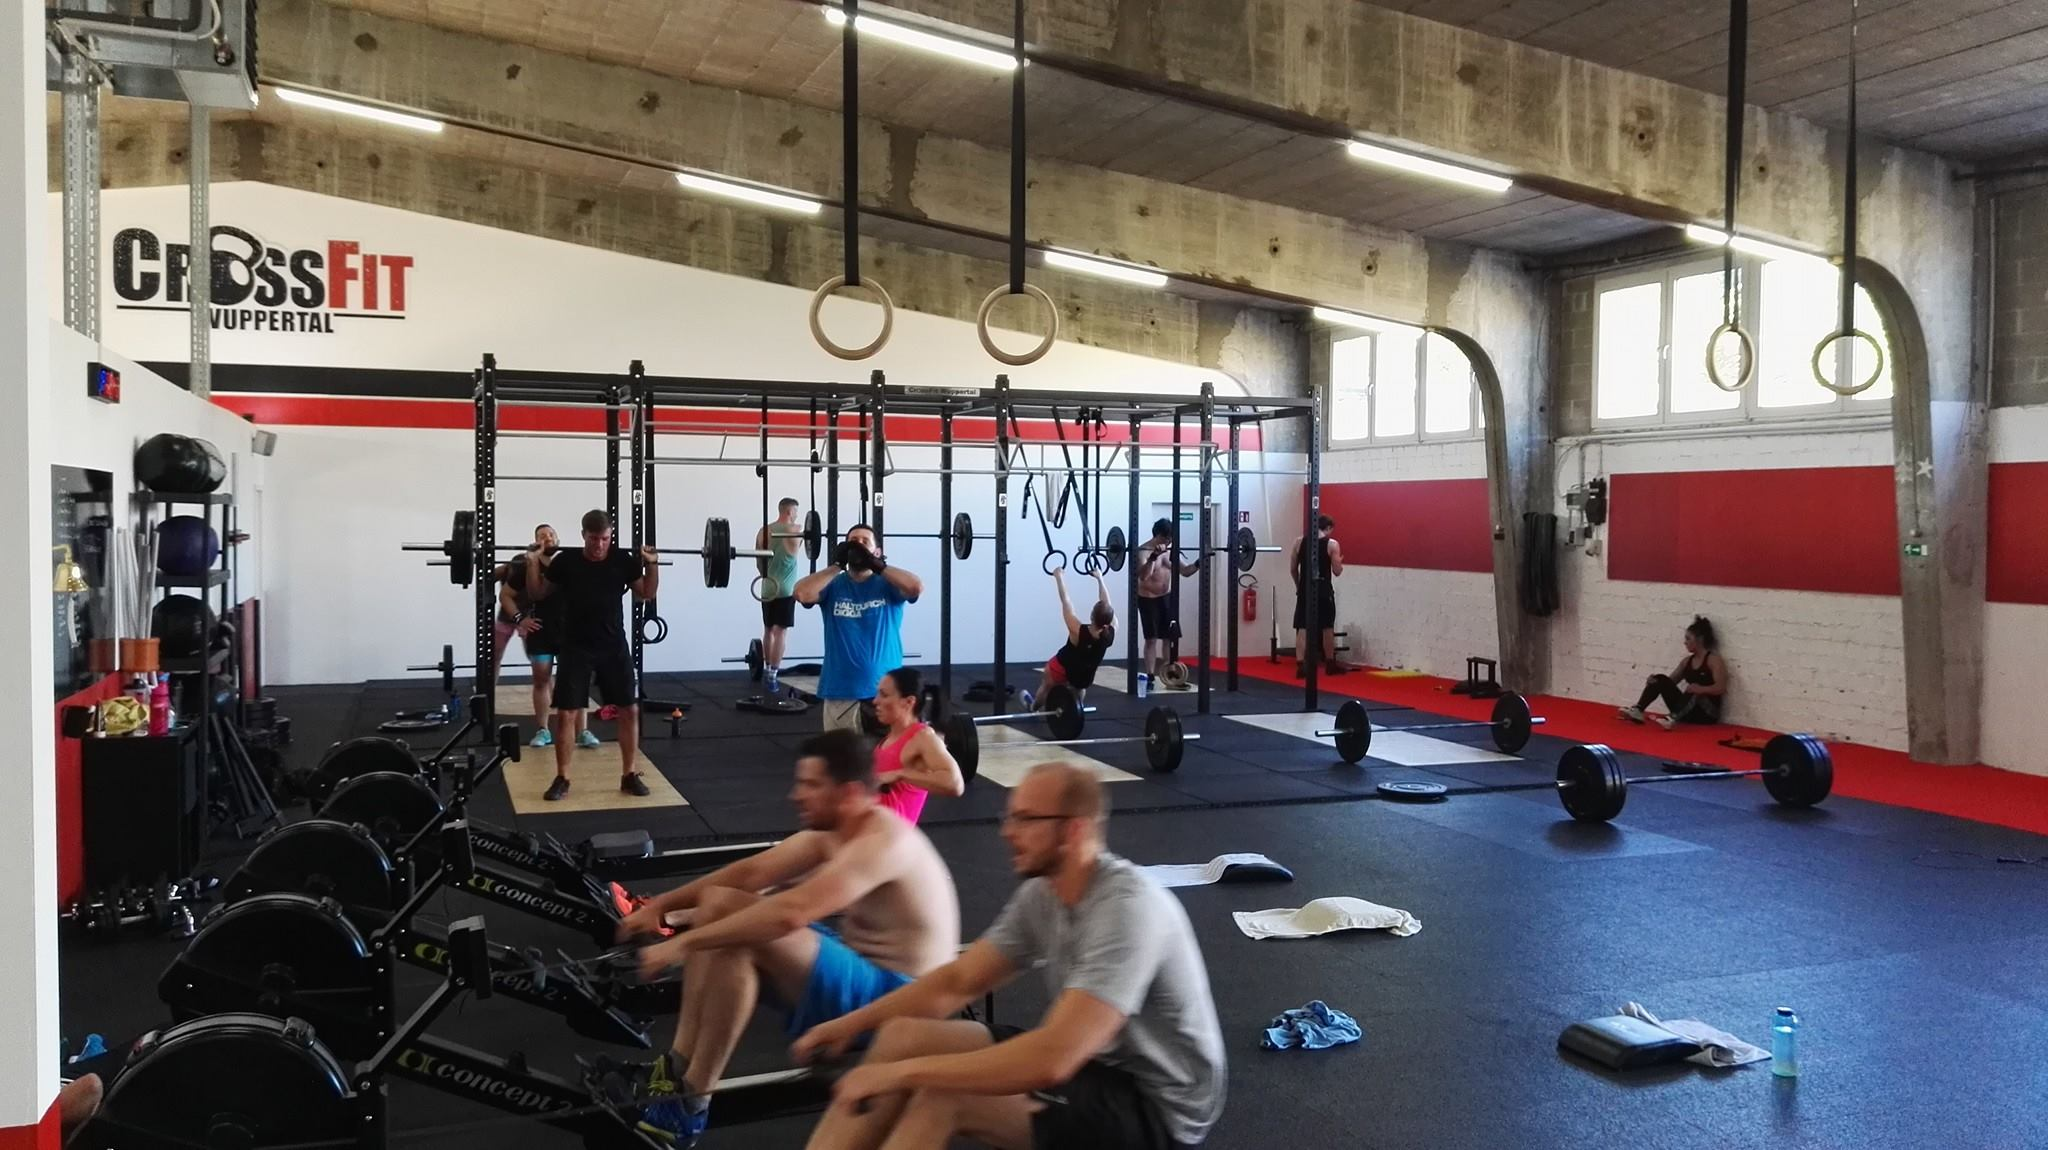 http://crossfitwuppertal.de/wp-content/uploads/2016/08/open.jpg